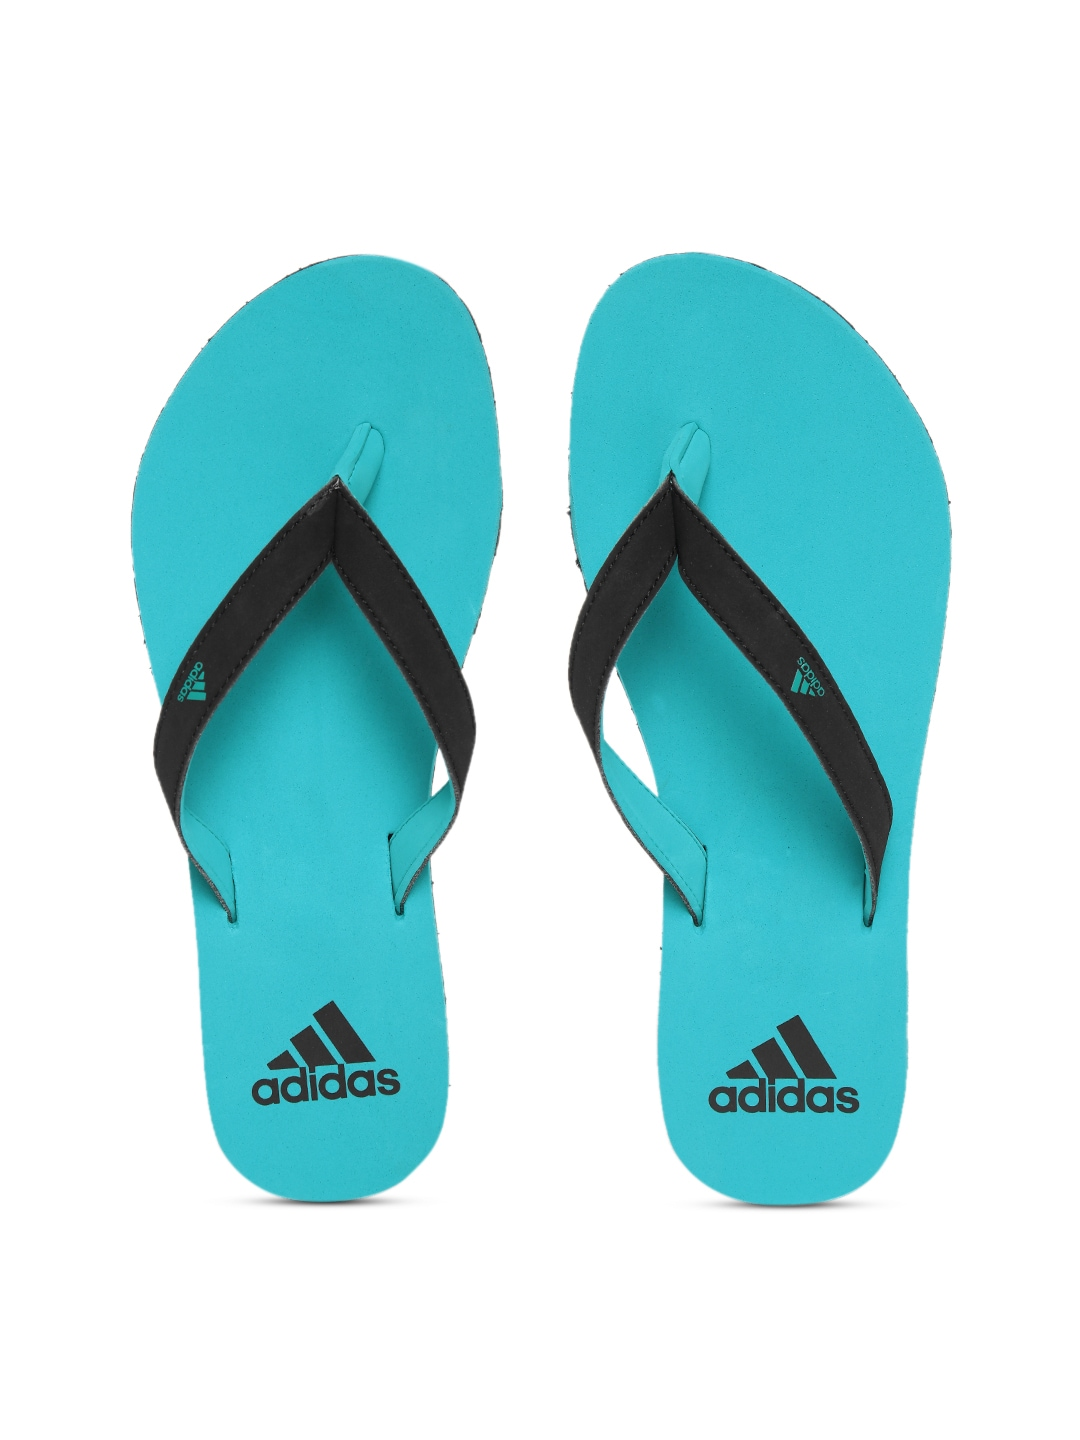 c5a67d201 Adidas Slippers - Buy Adidas Slipper   Flip Flops Online India